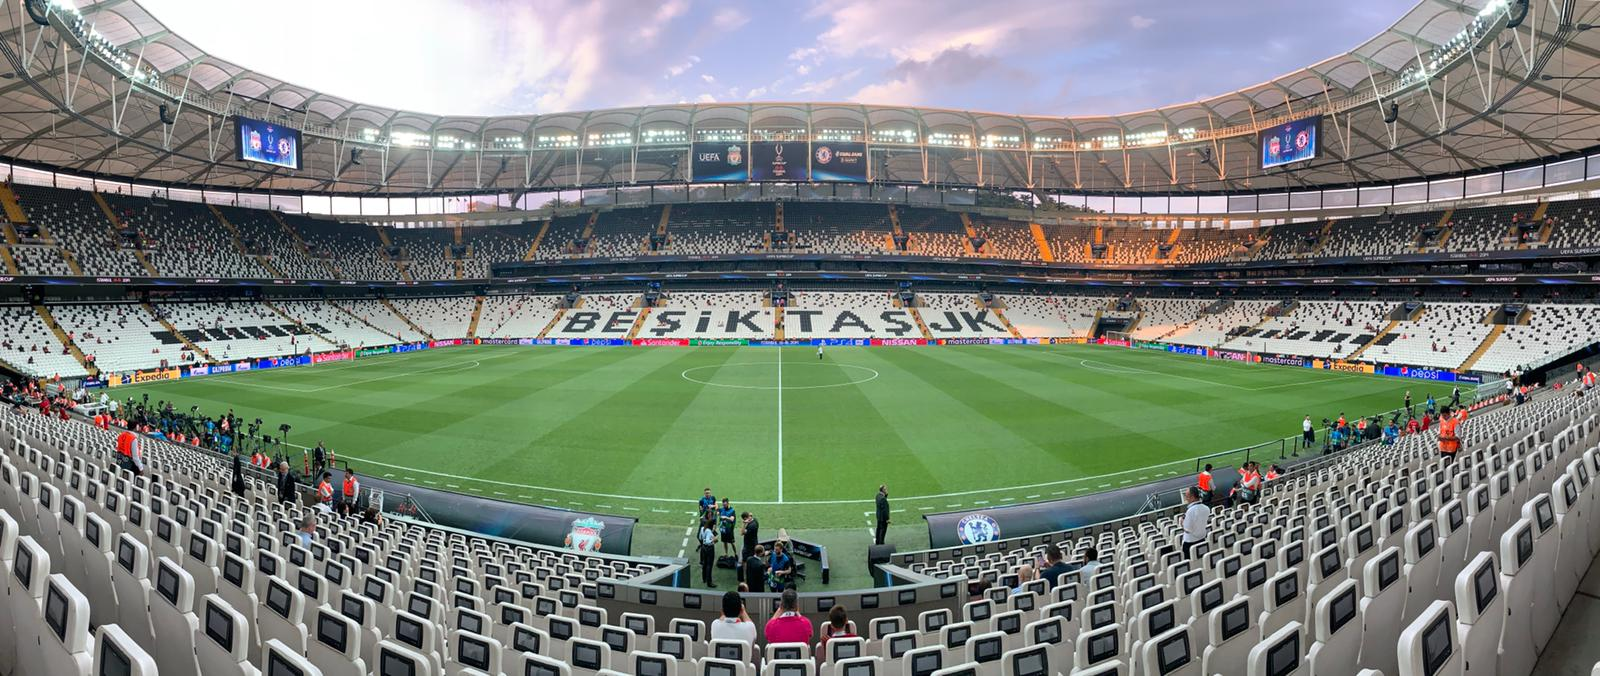 Tonight's venue 😍  Ready for another big European evening 👌 #SuperCup https://t.co/fpS7VRuvwU